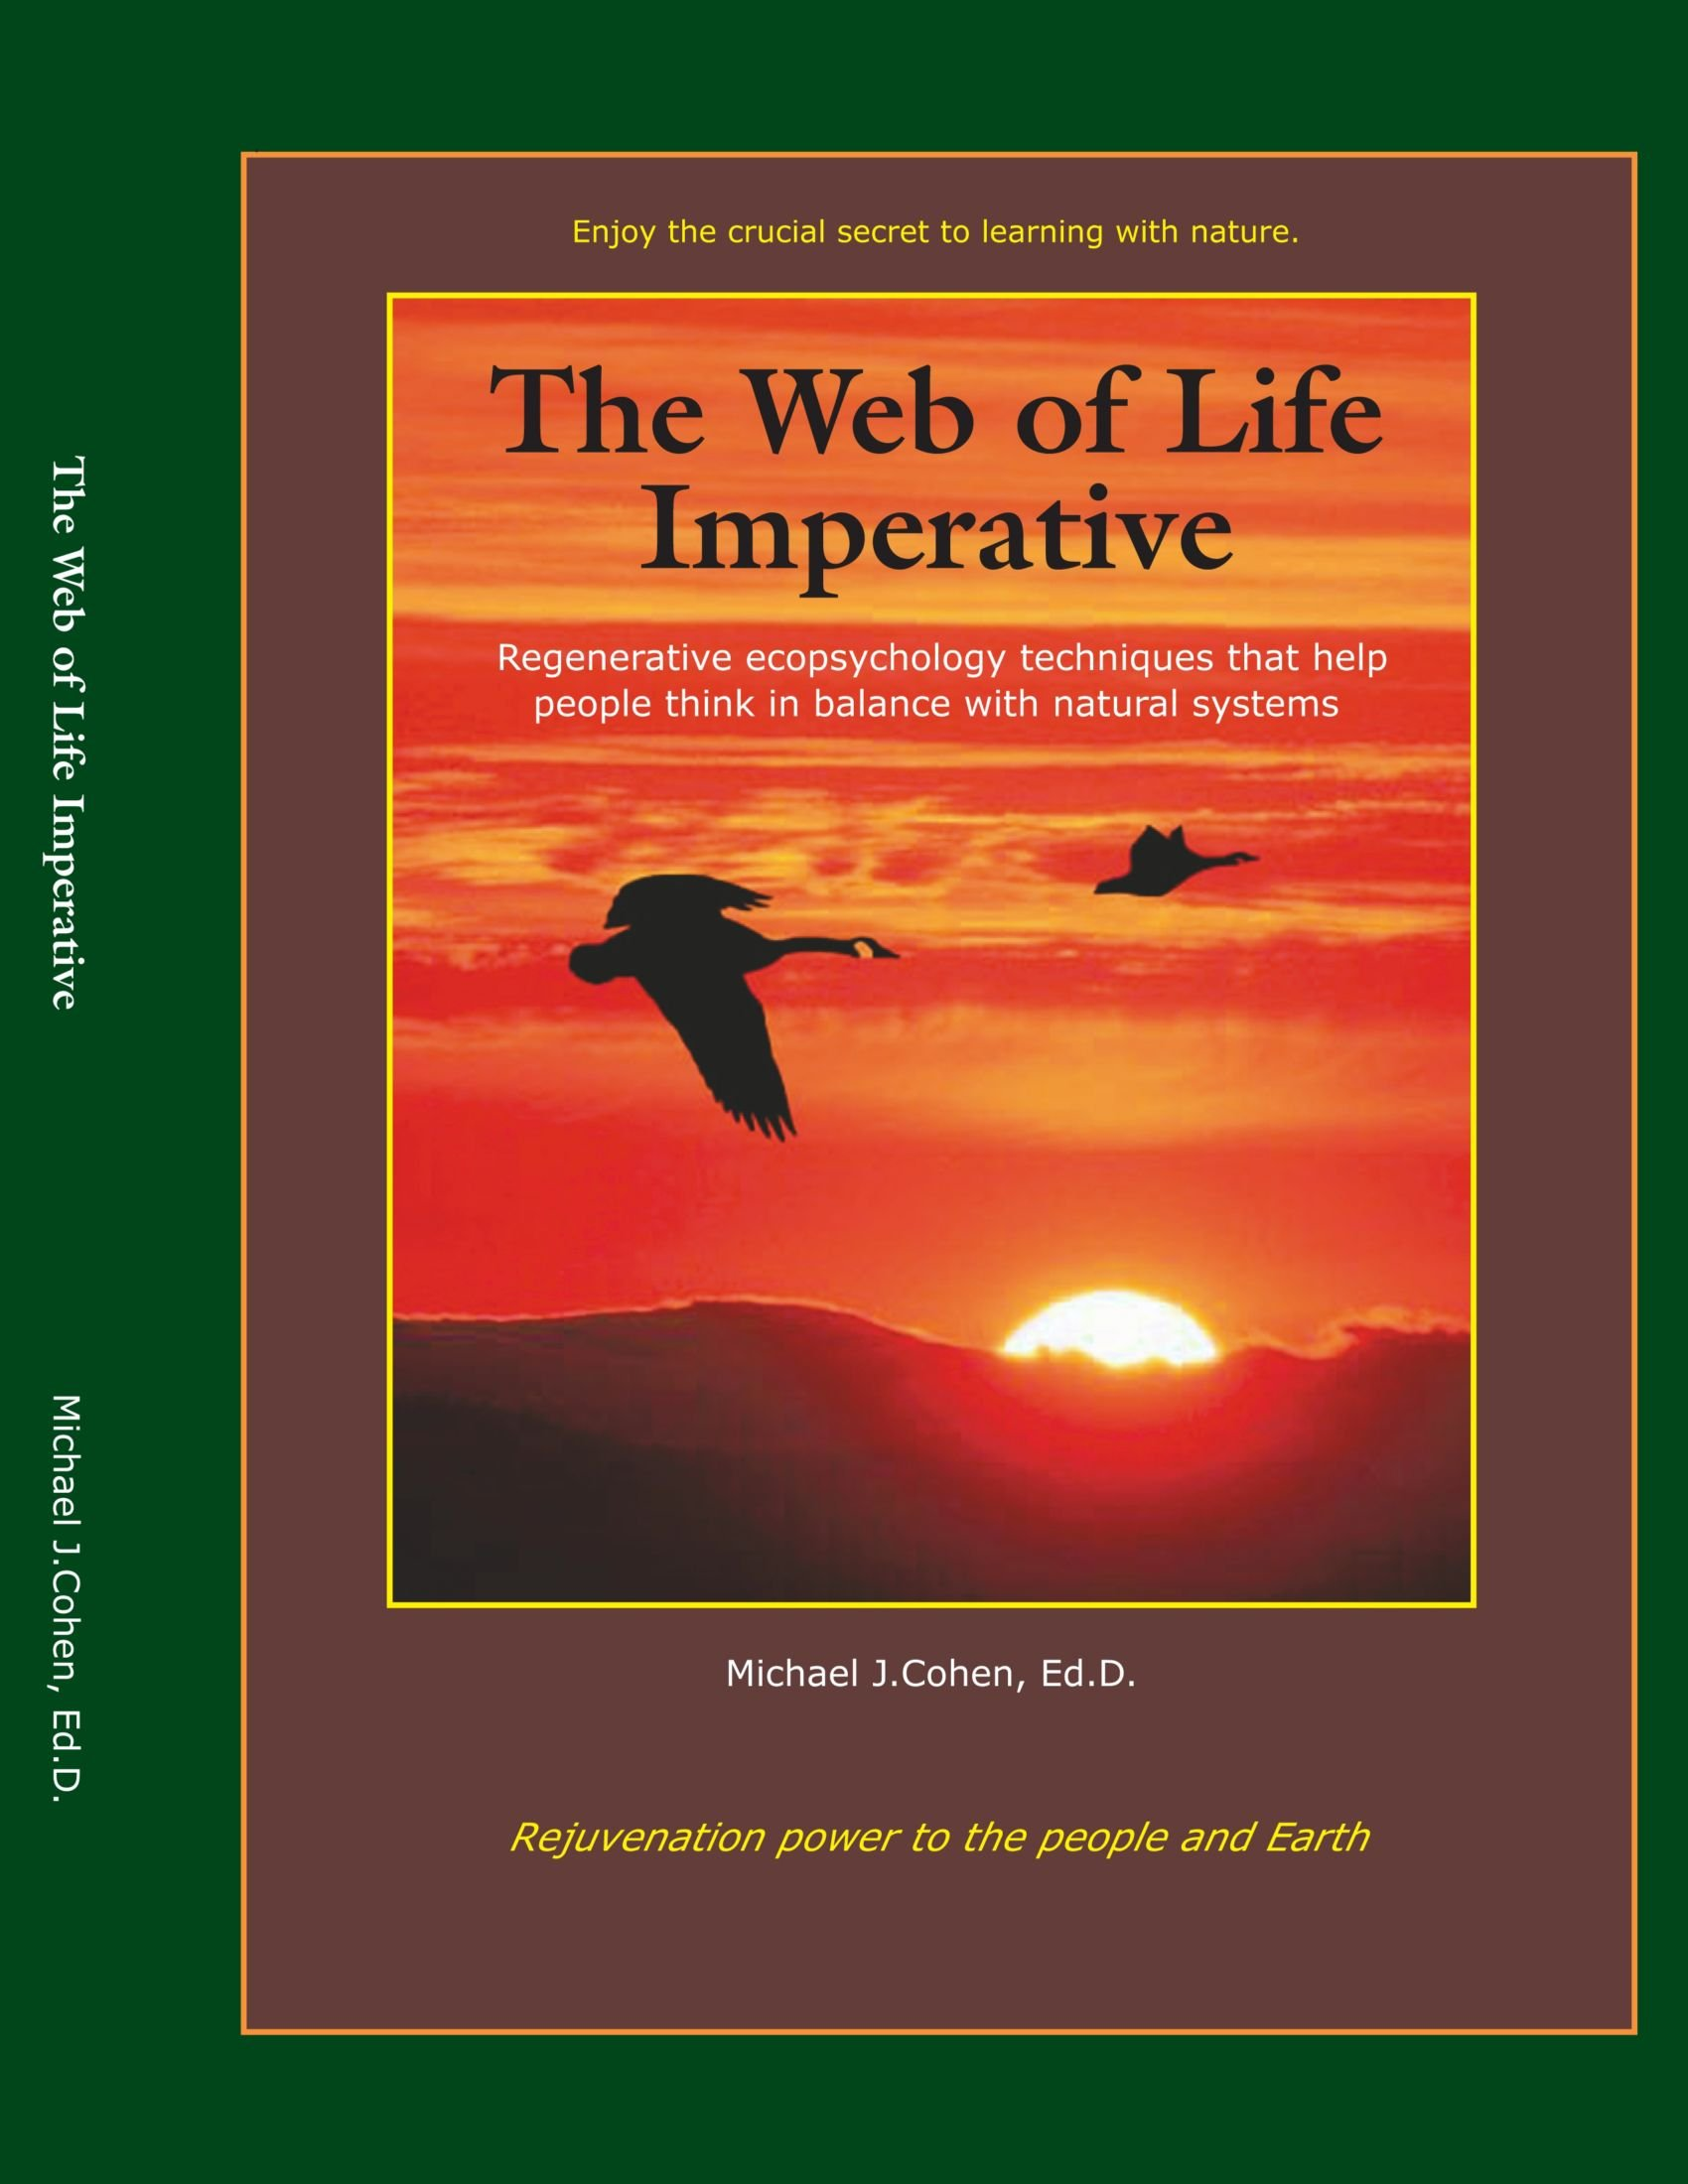 The Web of Life Imperative: Regenerative Ecopsychology Techniques that Help People Think in Balance with Natural Systems PDF